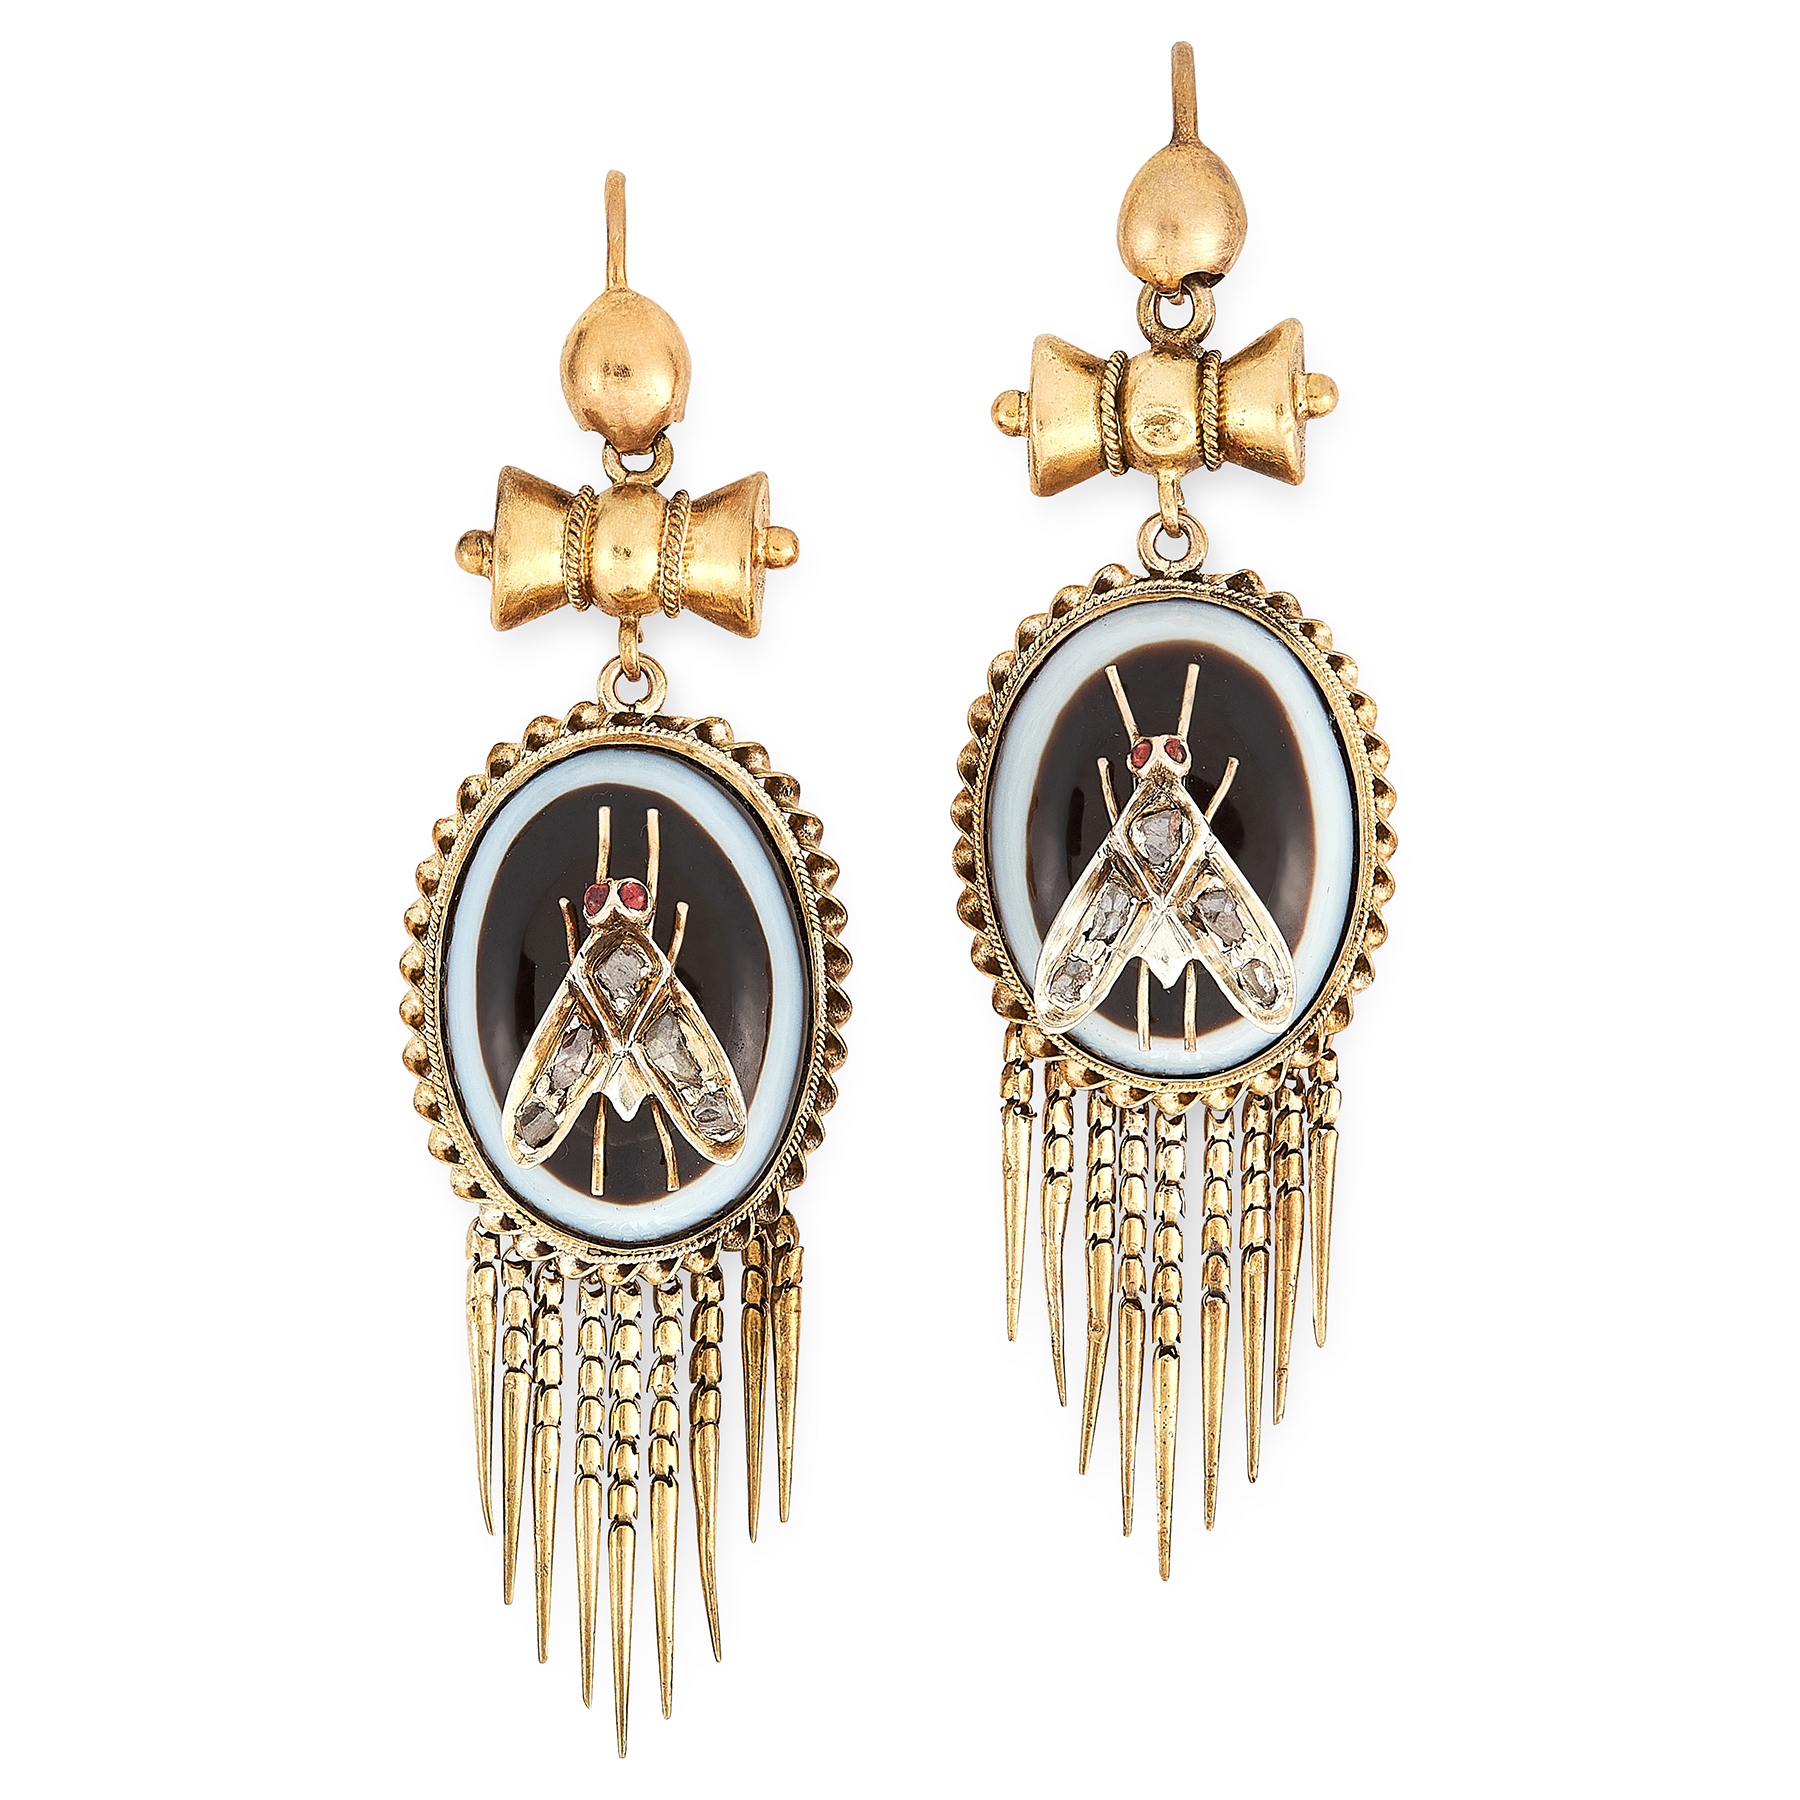 A PAIR OF ANTIQUE BANDED AGATE, DIAMOND AND RUBY FLY EARRINGS, 19TH CENTURY in yellow gold, each set